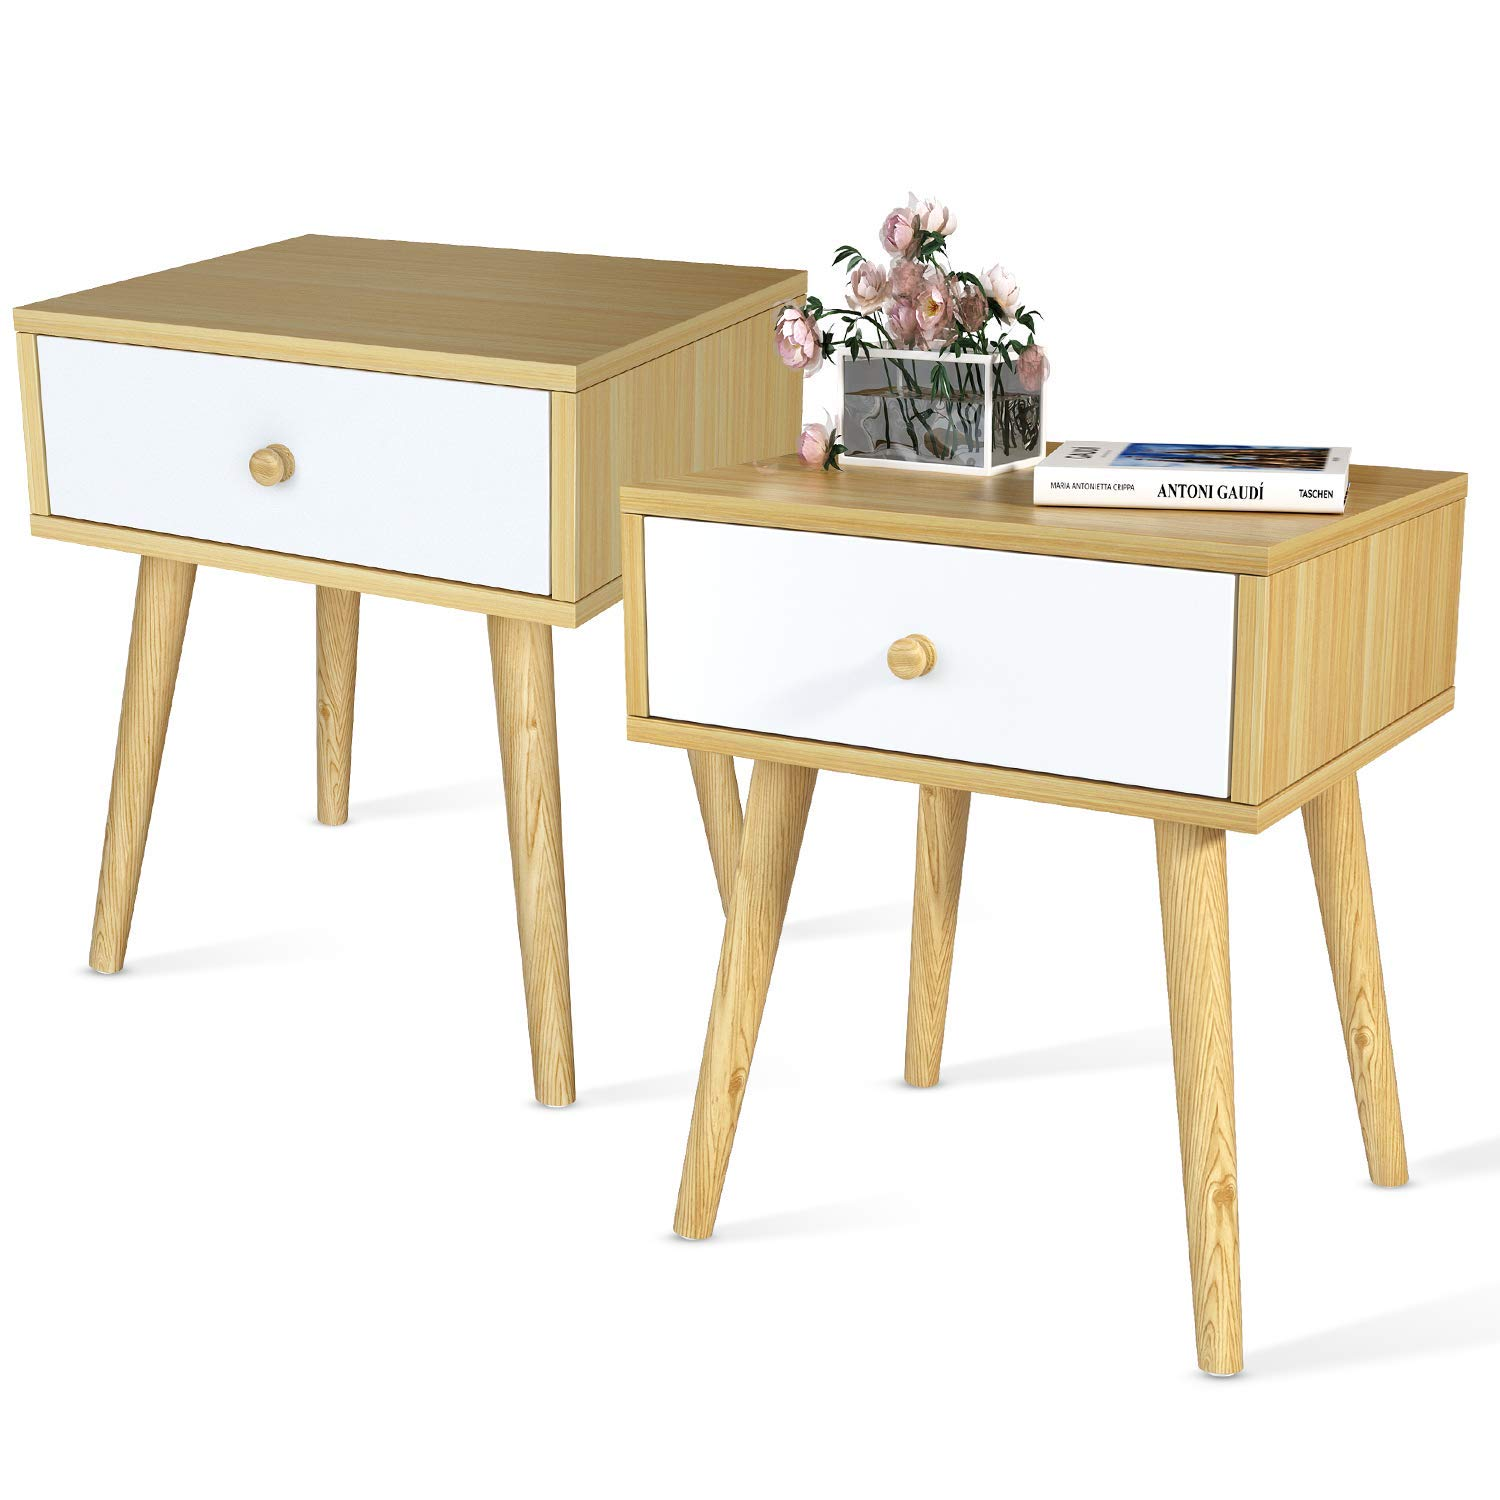 Recaceik Nightstand -Set of 2, Stackable End Table, Side Table for Small Spaces, Storage Compartment, Industrial Accent Furniture, Wood Frame for Bedroom Furniture